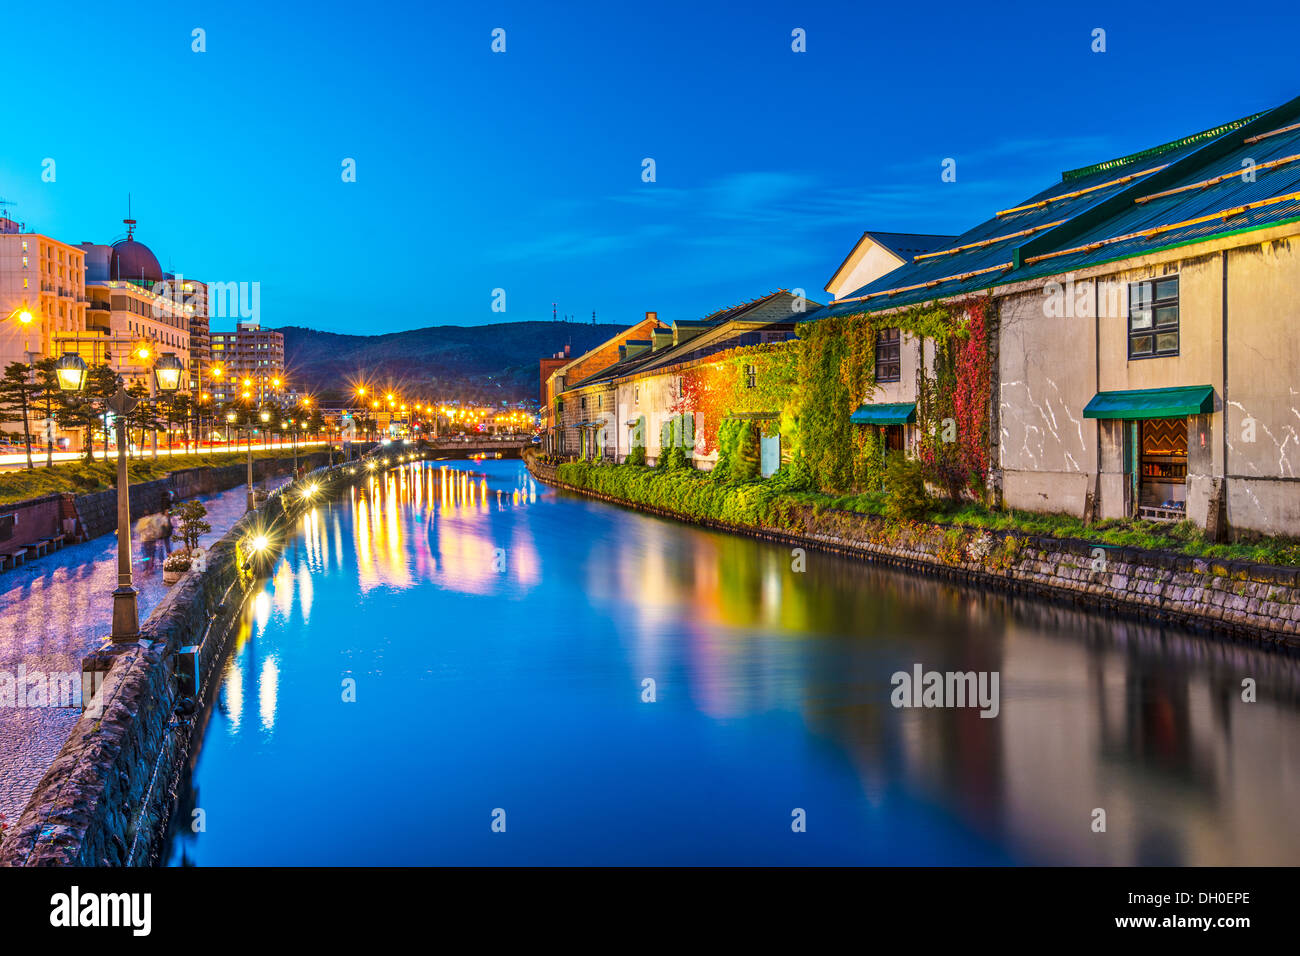 Canals of Otaru, Japan. - Stock Image